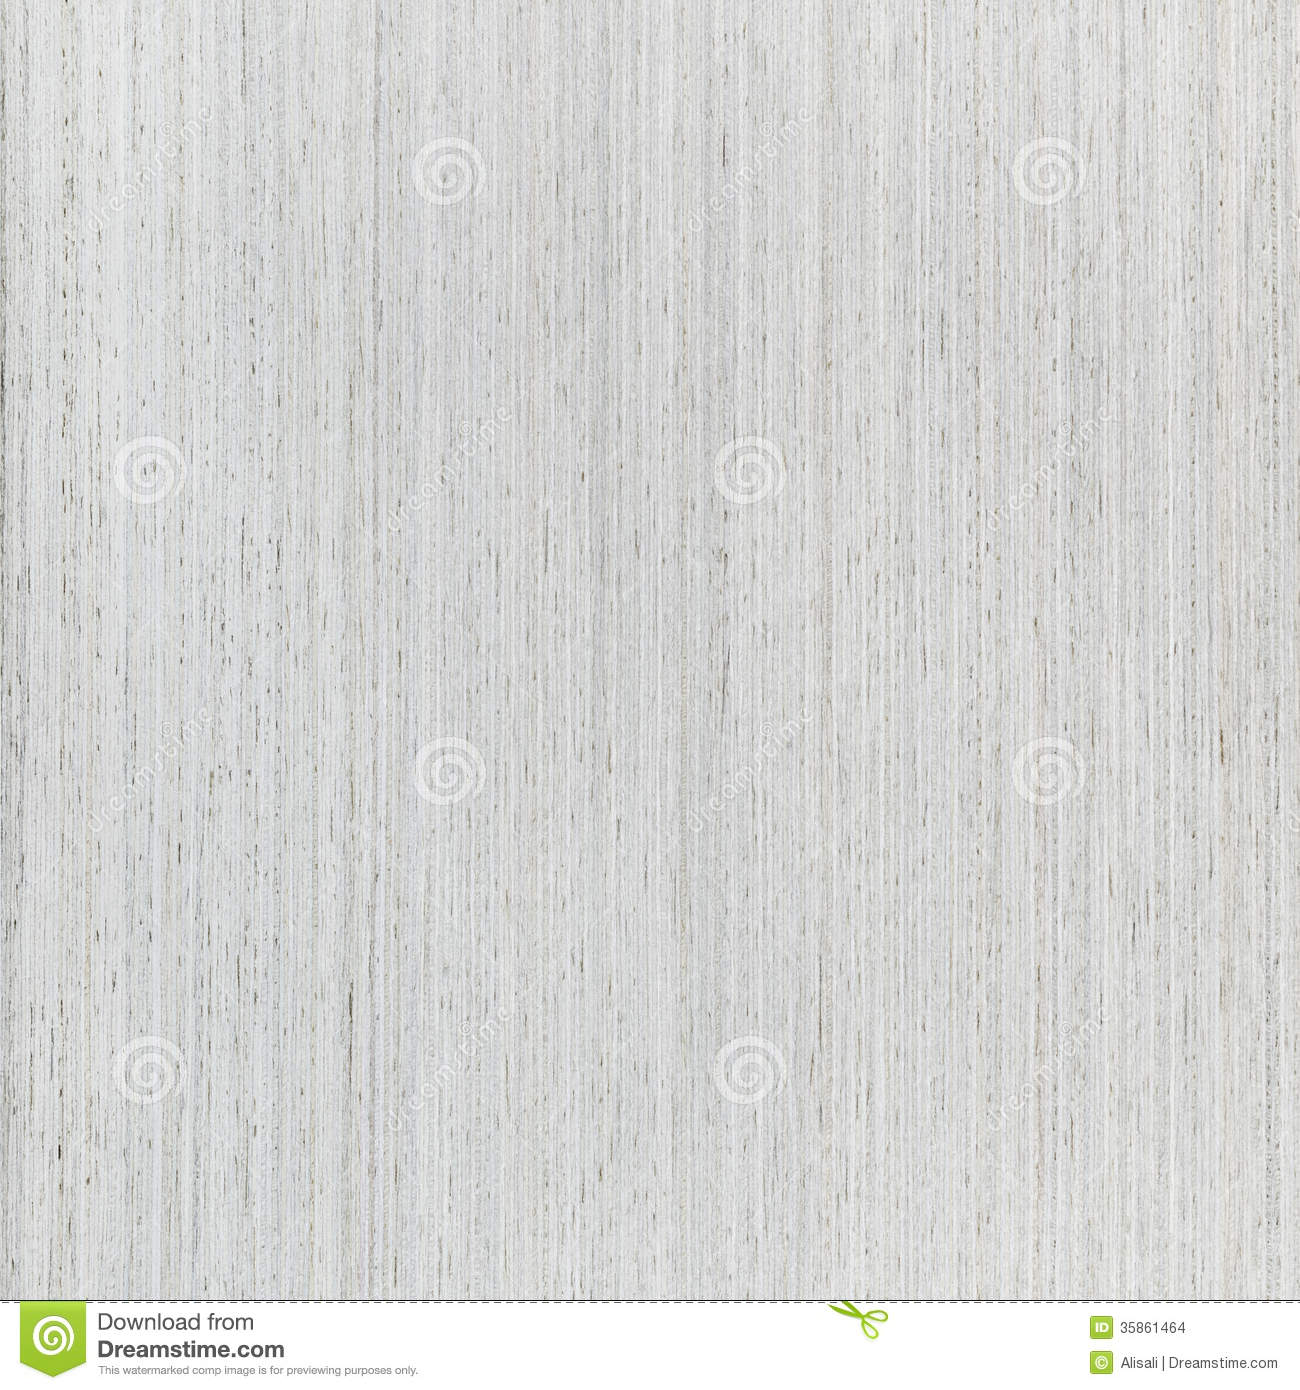 cedar wood furniture with Stock Images Grey Oak Background Wood Wallpaper Natural Rural Tree Image35861464 on 3d Wood Carving Patterns Free further Wood Stove House Plans Pdf Woodworking Cbfa4059f70f7338 in addition 4679 Palram 10x28 Joya White Hg8928 as well Capecod 3 moreover Download Free Birdhouse Plans Pdf Free Printable Furniture Templates For Floor Plans.